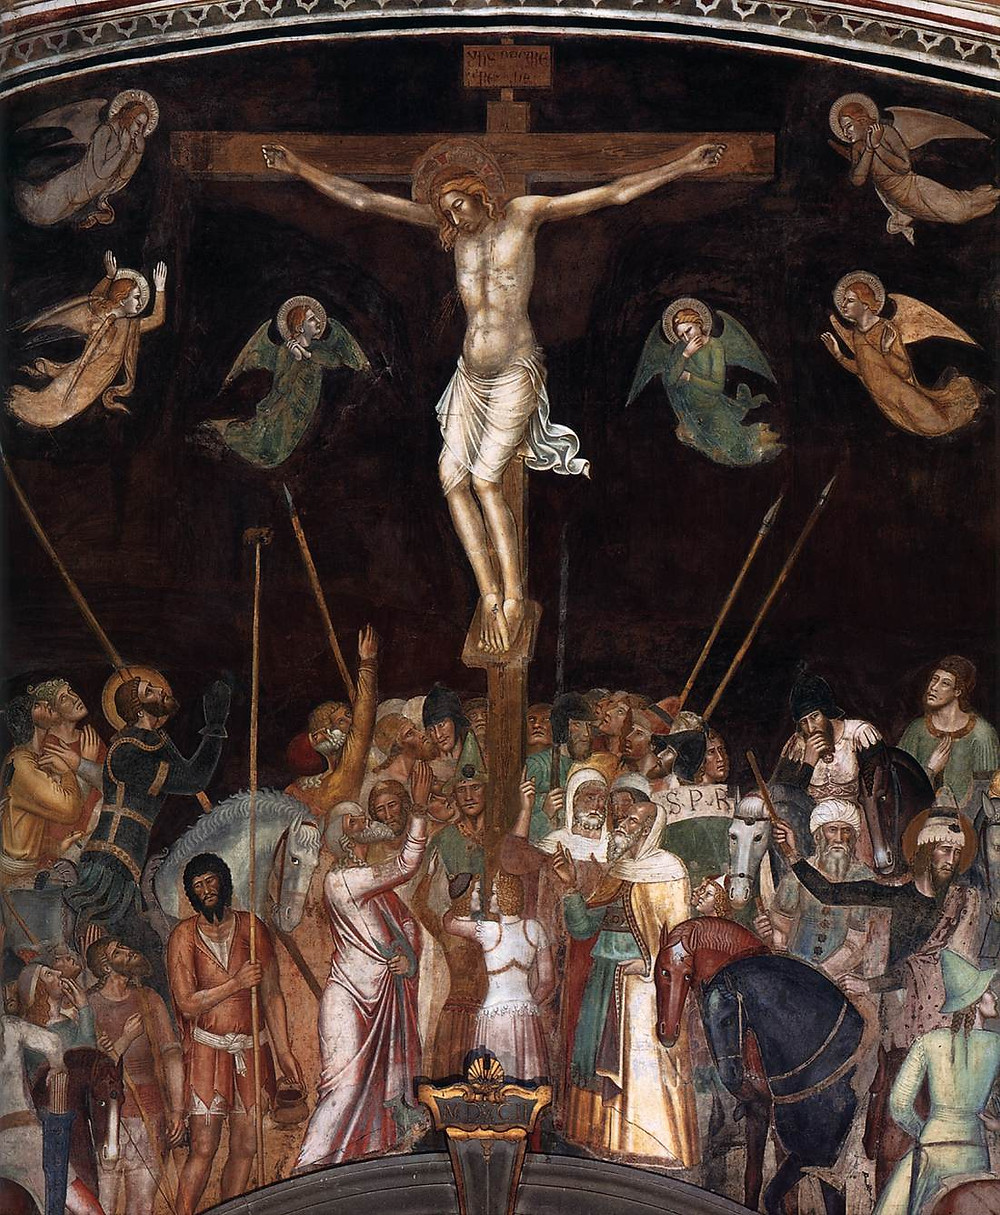 detail of the Crucifixion in the Spanish Chapel